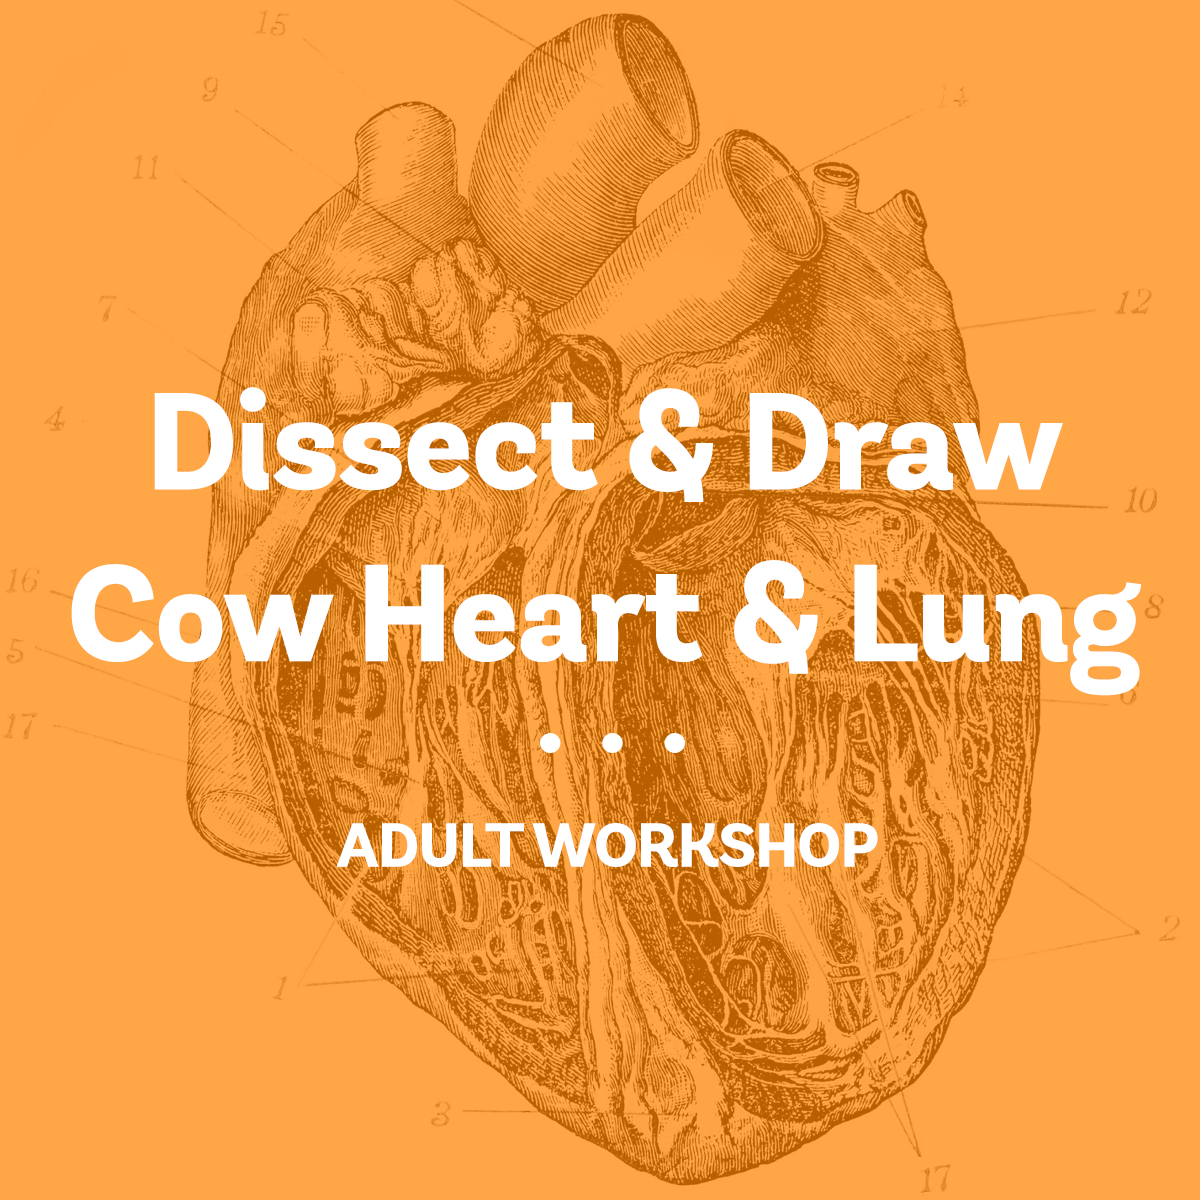 Dissect and Draw_2018.png